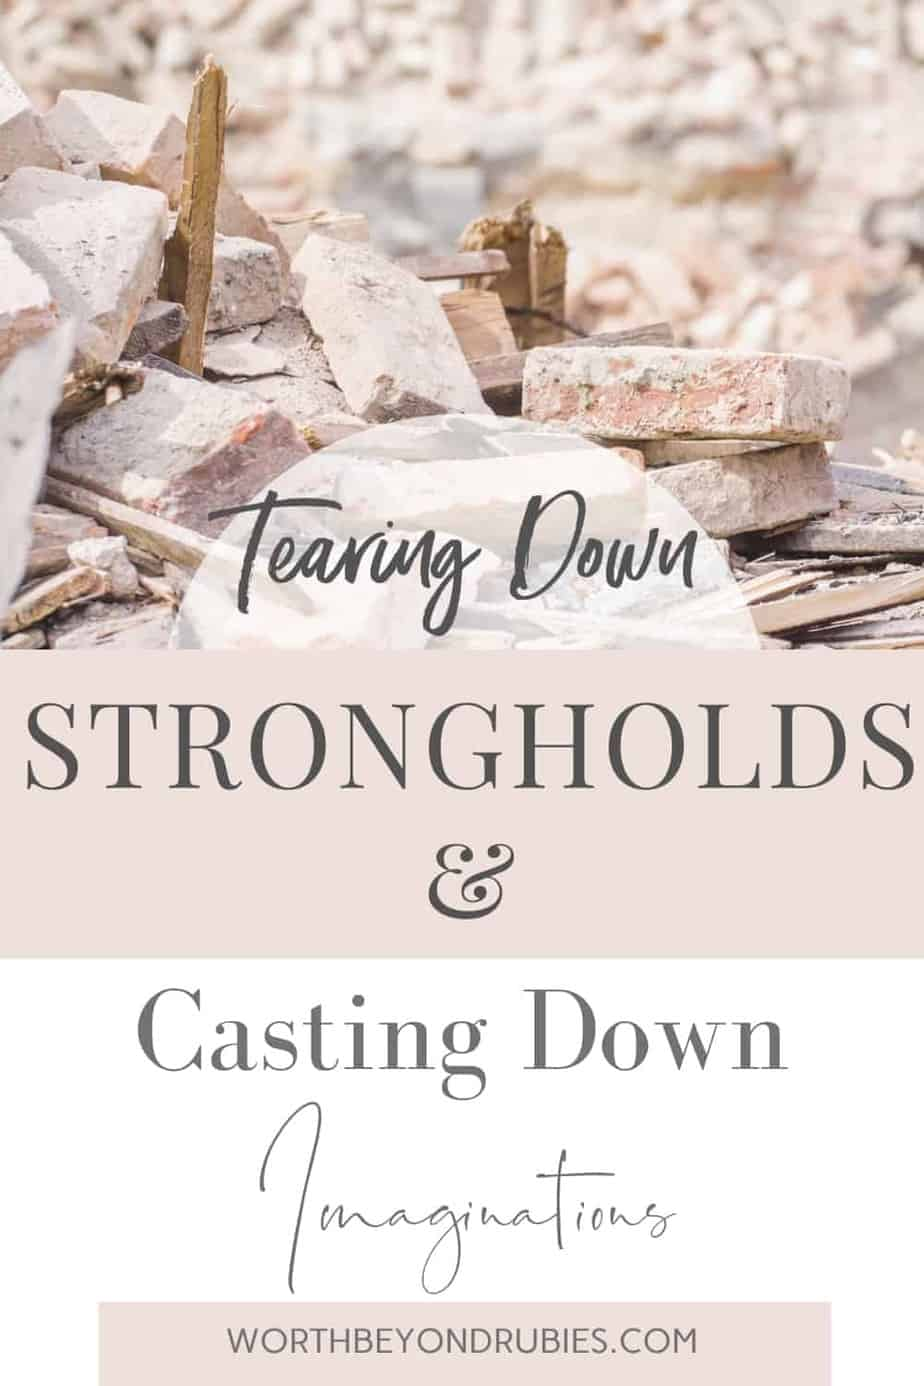 An image of bricks laying on the ground in a pile of rubble and text that says Tearing Down Strongholds & Casting Down Imaginations